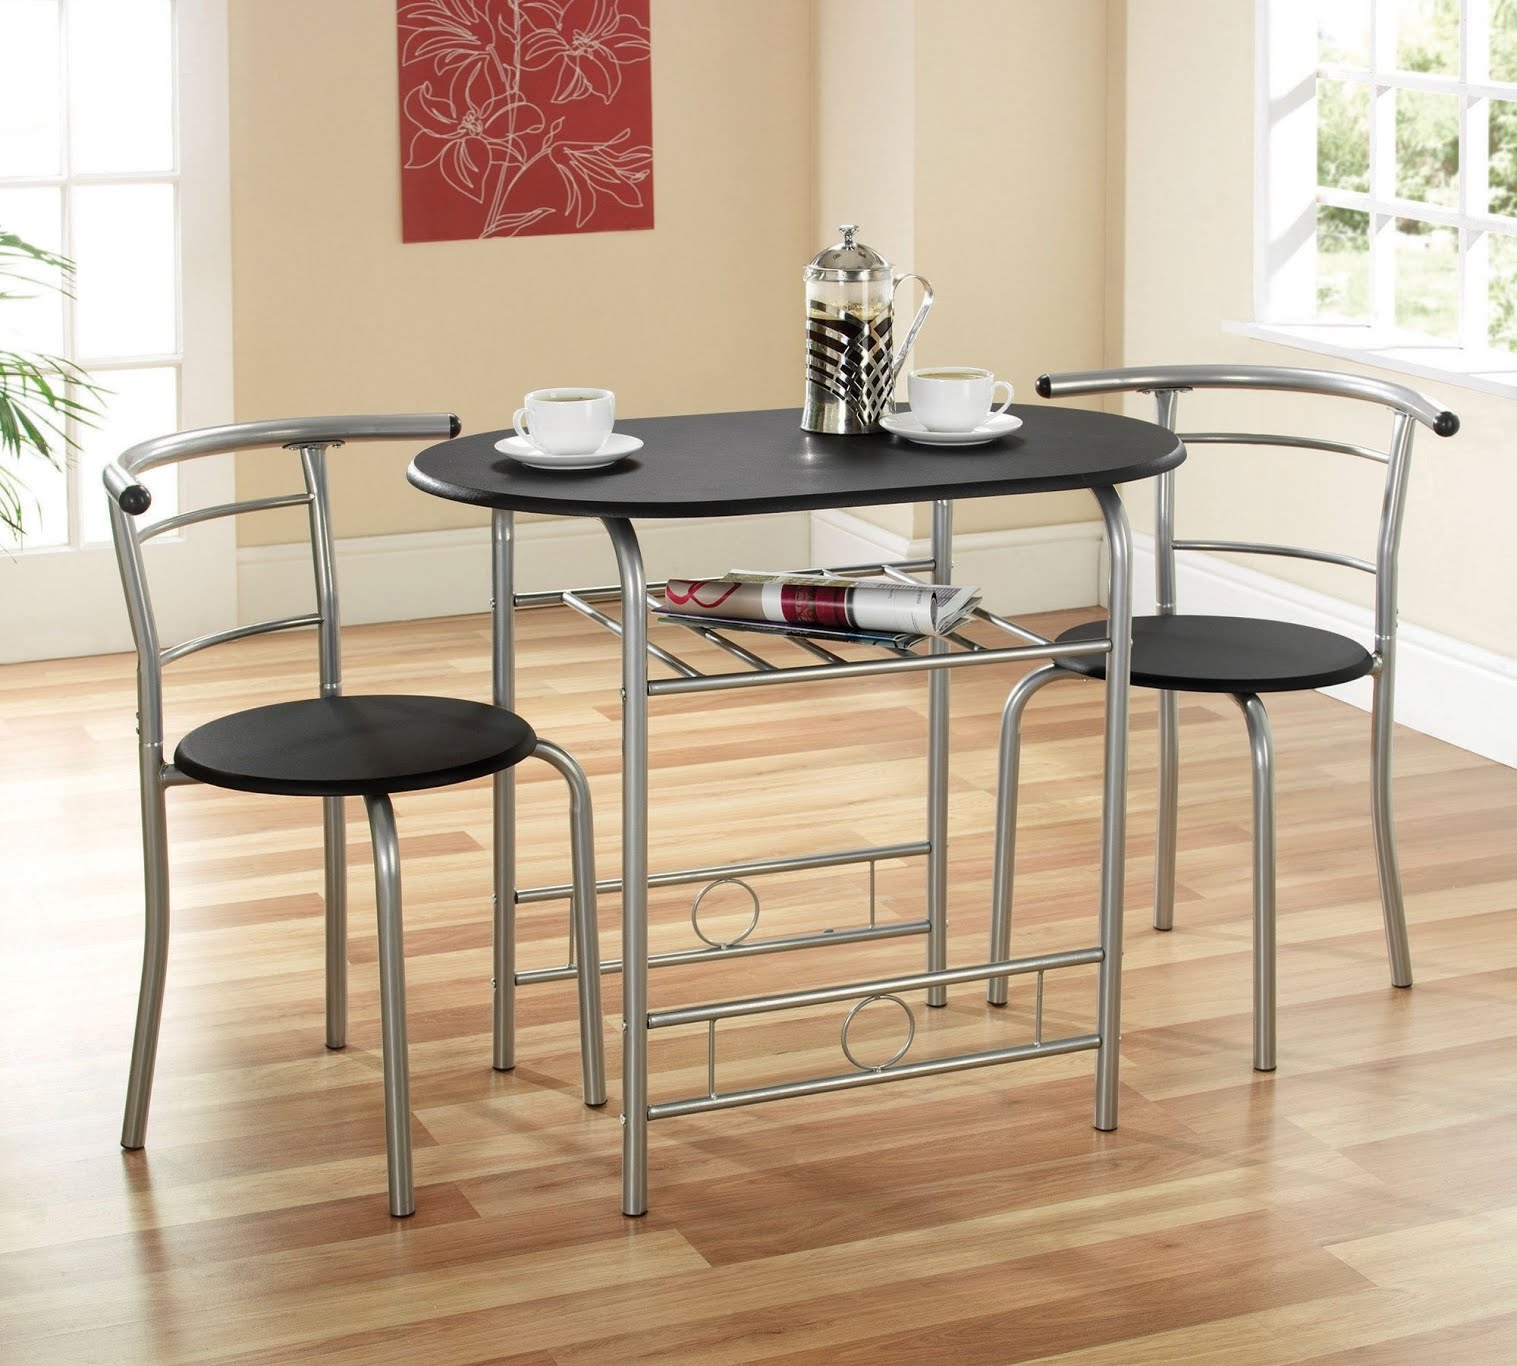 Beau Furniture. Round Brown Wooden Space Saving Table And Curvy .